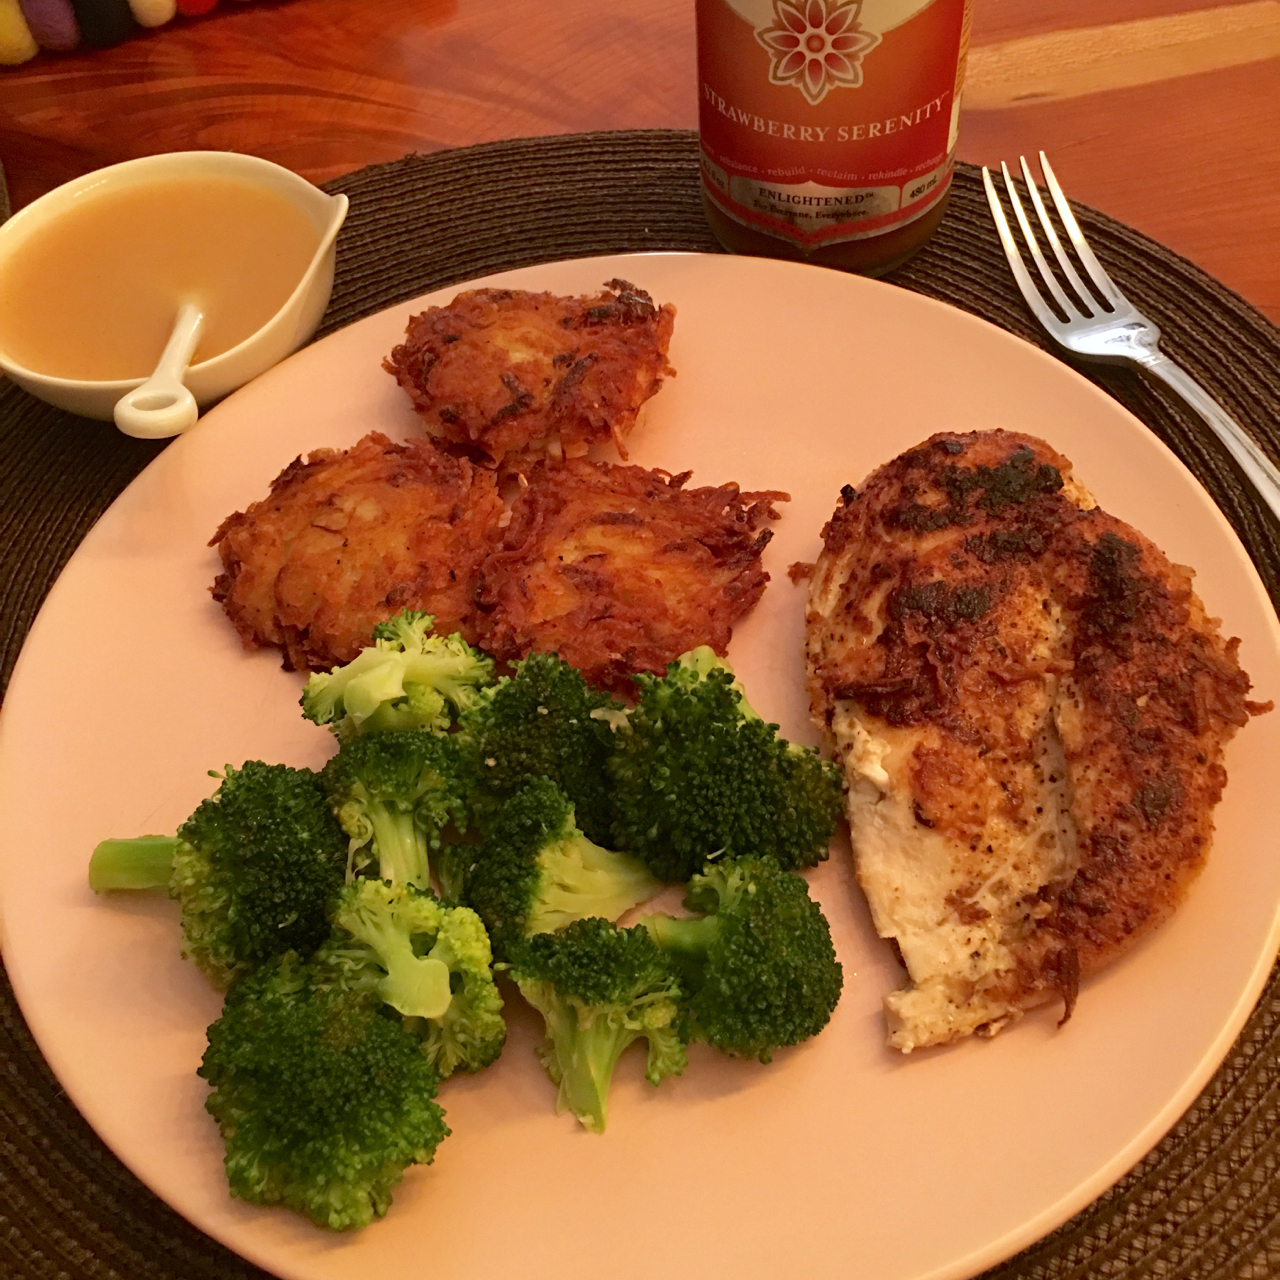 GARLIC CHICKEN WITH POTATO LATKES, APPLE SAUCE AND STEAMED BROCCOLI